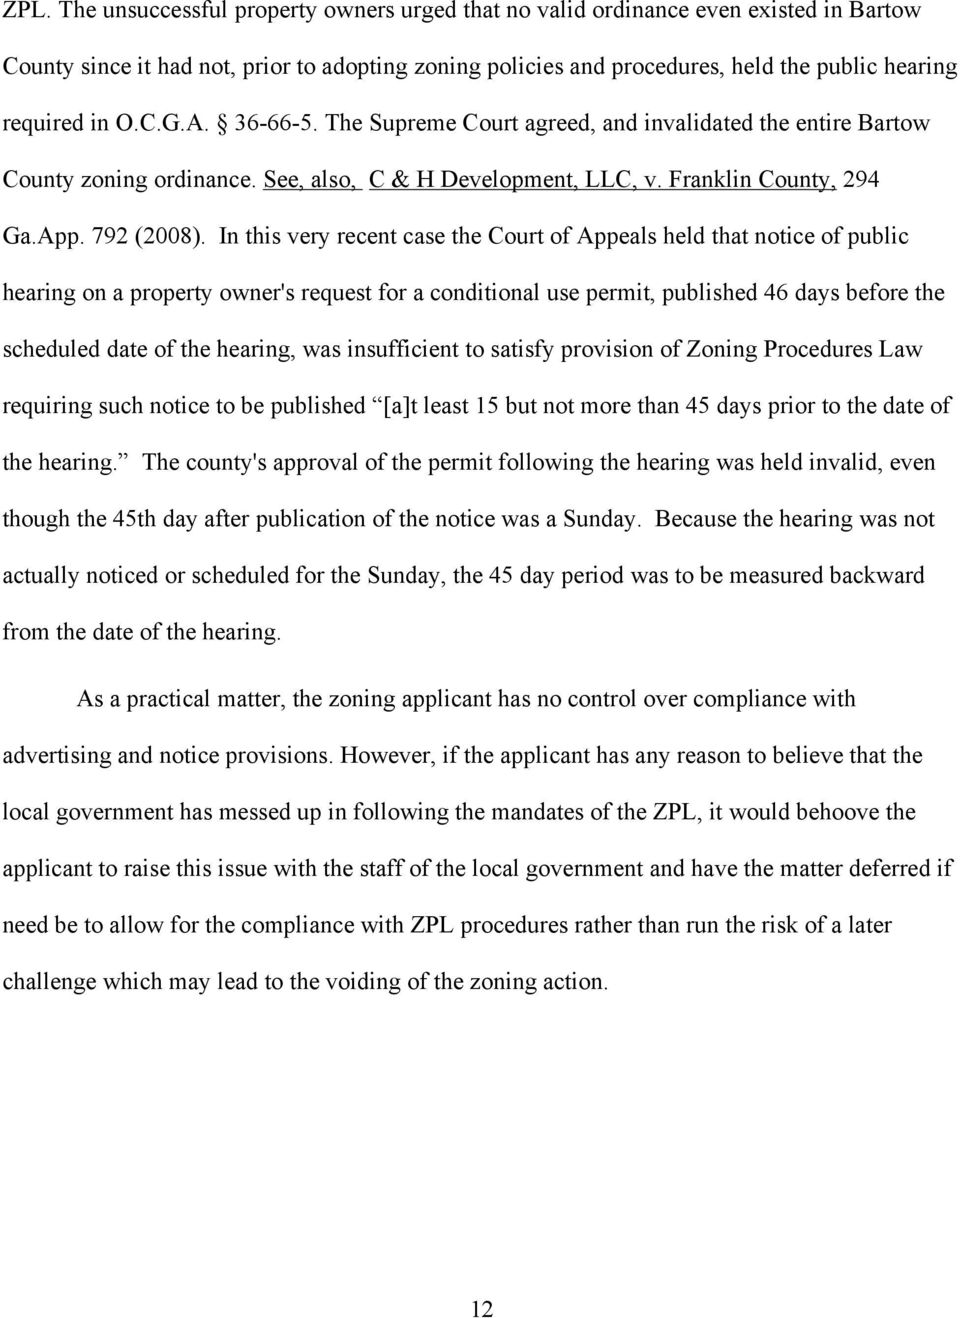 In this very recent case the Court of Appeals held that notice of public hearing on a property owner's request for a conditional use permit, published 46 days before the scheduled date of the